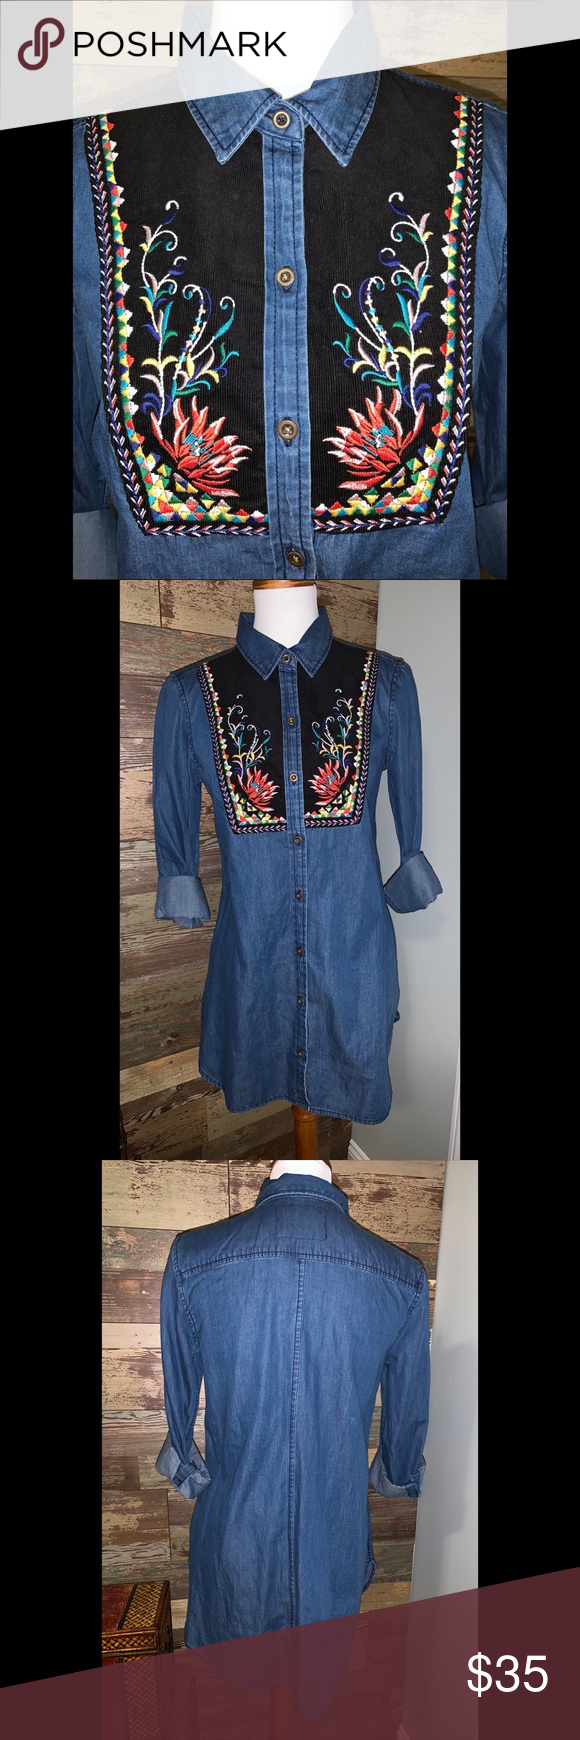 d324ffea2ff NWOT ANTHROPOLOGIE Holding Horses Embroidered Top ANTHROPOLOGIES Holding  Horses Embroidered Chambray Denim Murelet Tunic Cotton Embroidered bib  detail ...